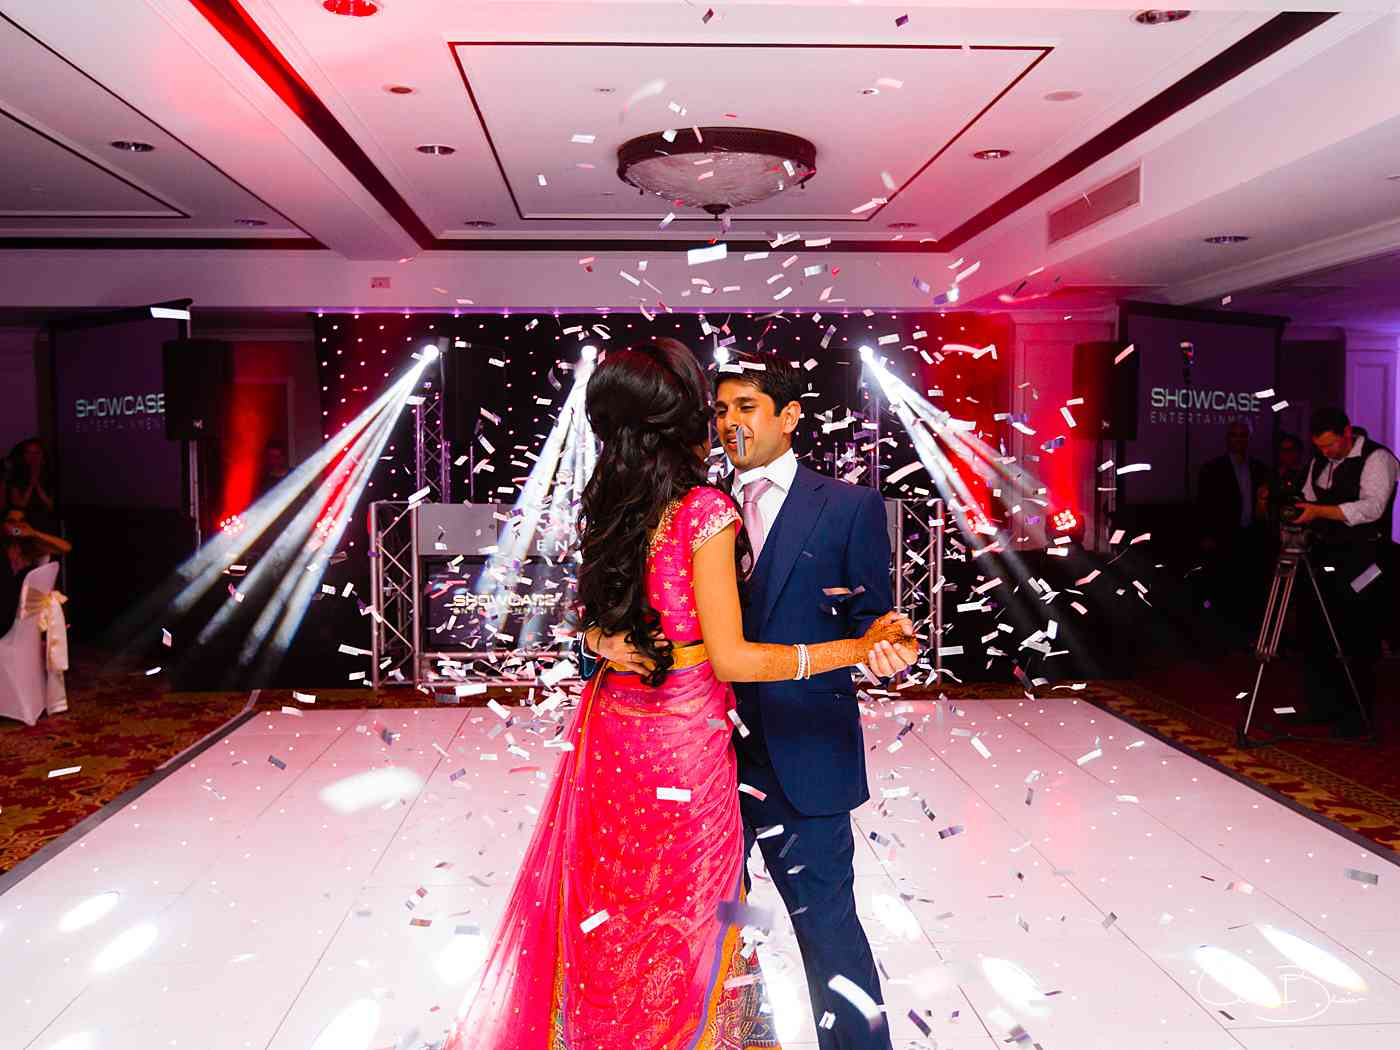 Bride and groom being showered with a confetti bomb during their first dance